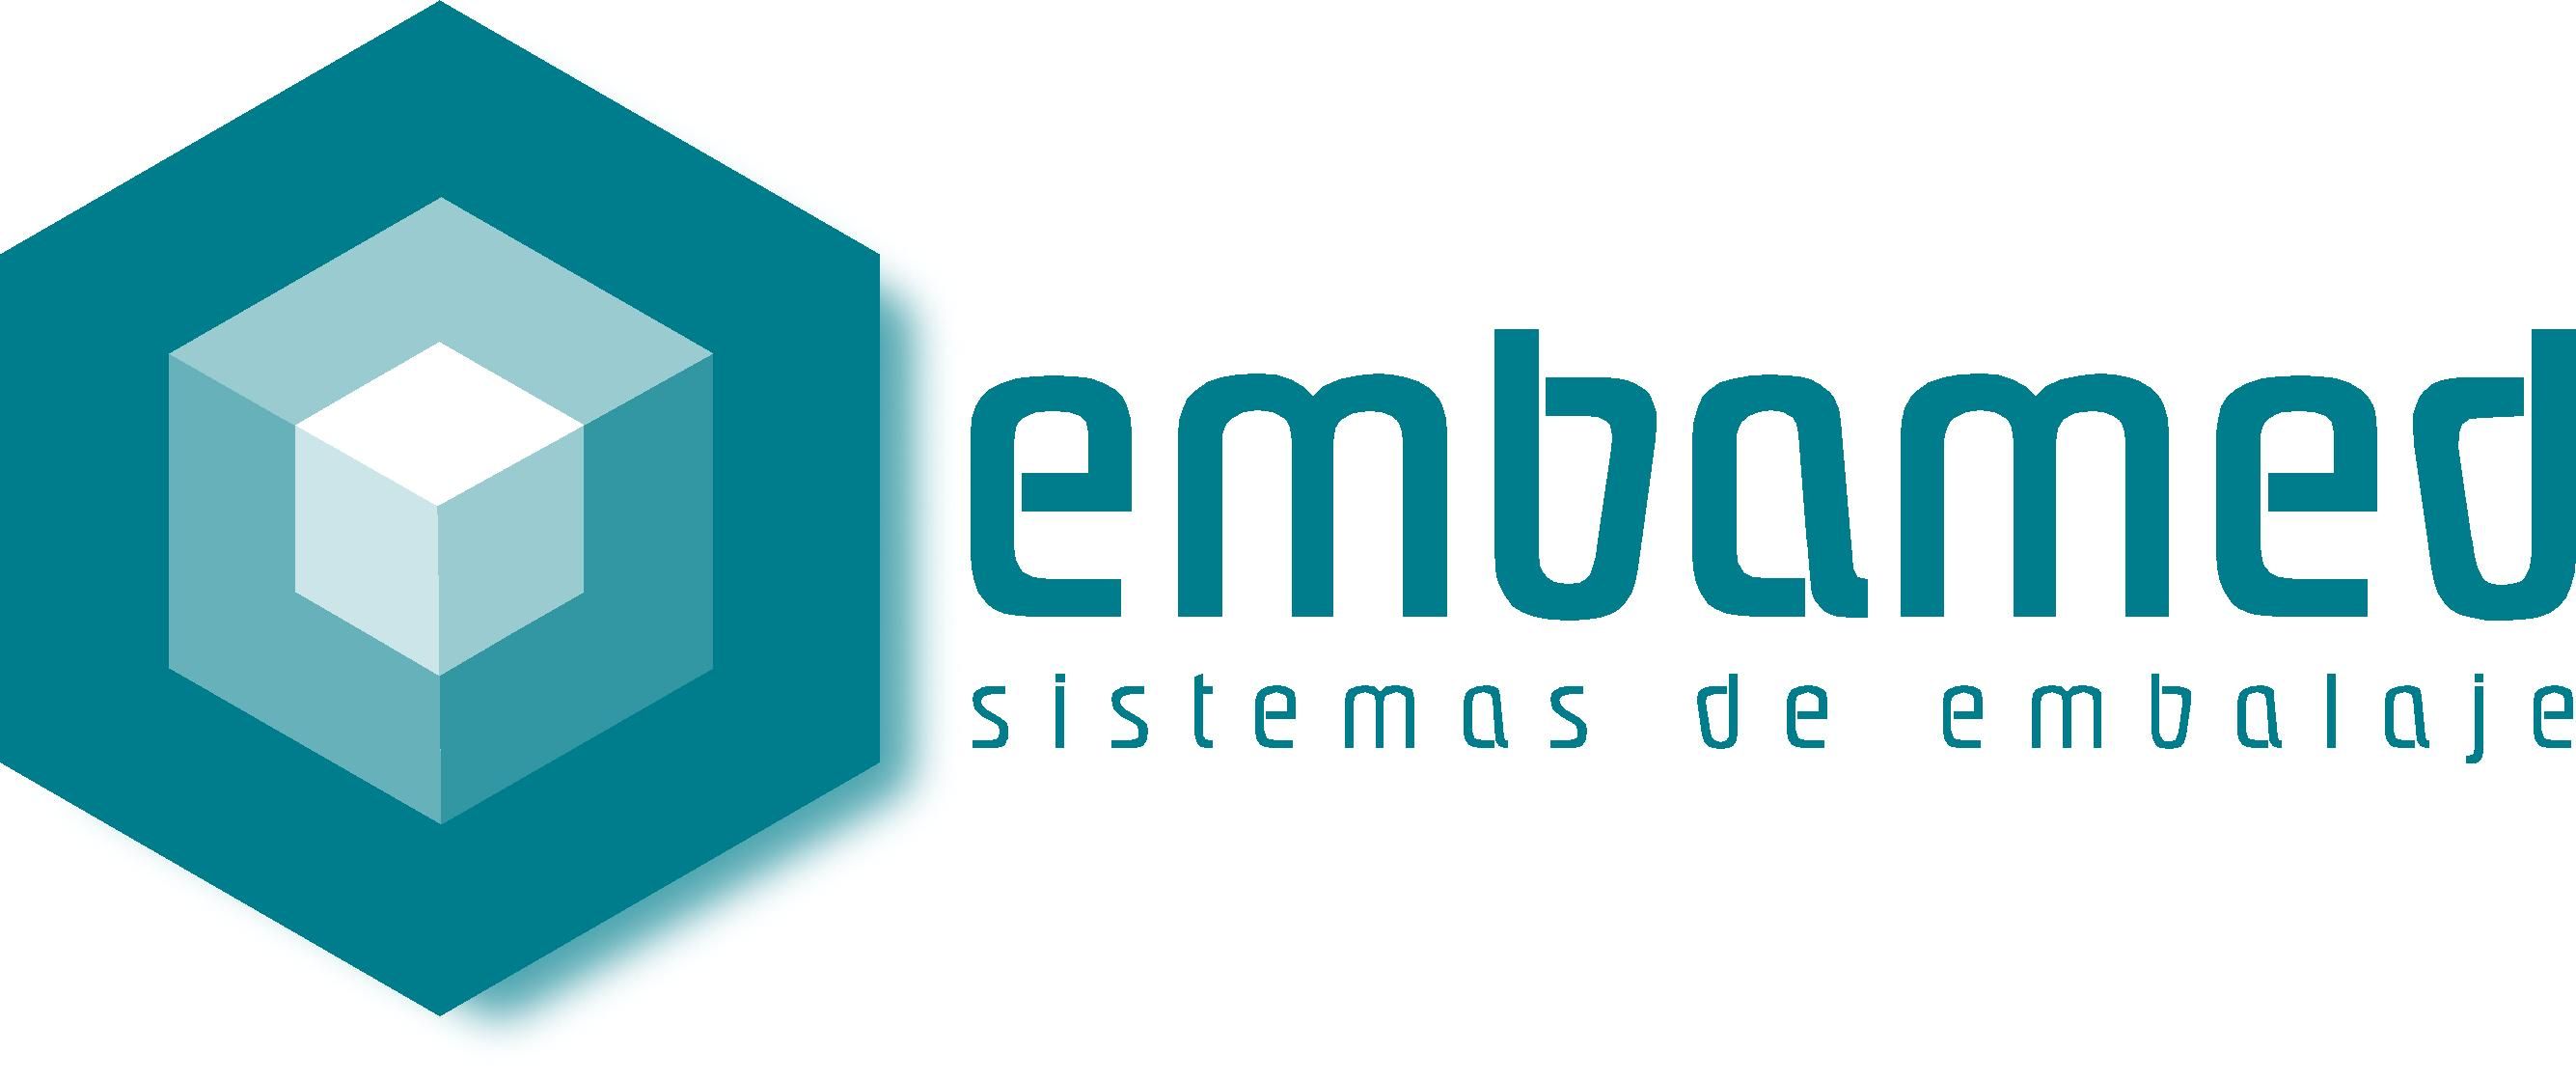 Sistemas de embalaje - Embamed Packaging S.L.